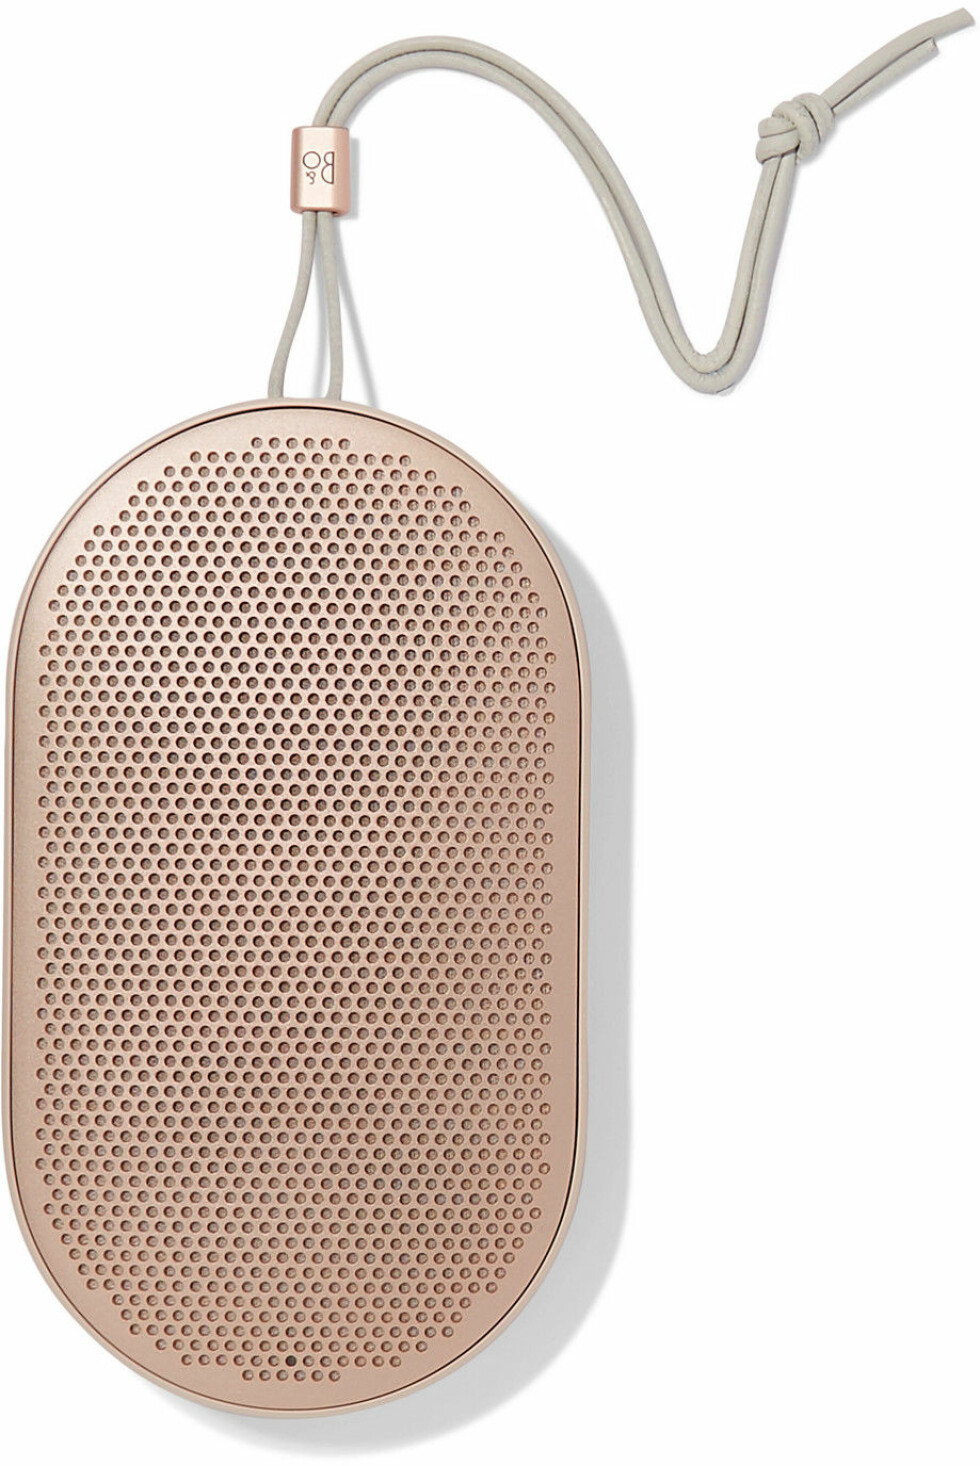 B&O Play Speaker |1700,-| https://www.boozt.com/no/no/bo-play/beoplay-p2_16082943/16082944?utm_source=google&utm_medium=feed&utm_content=no&utm_campaign=productsearch